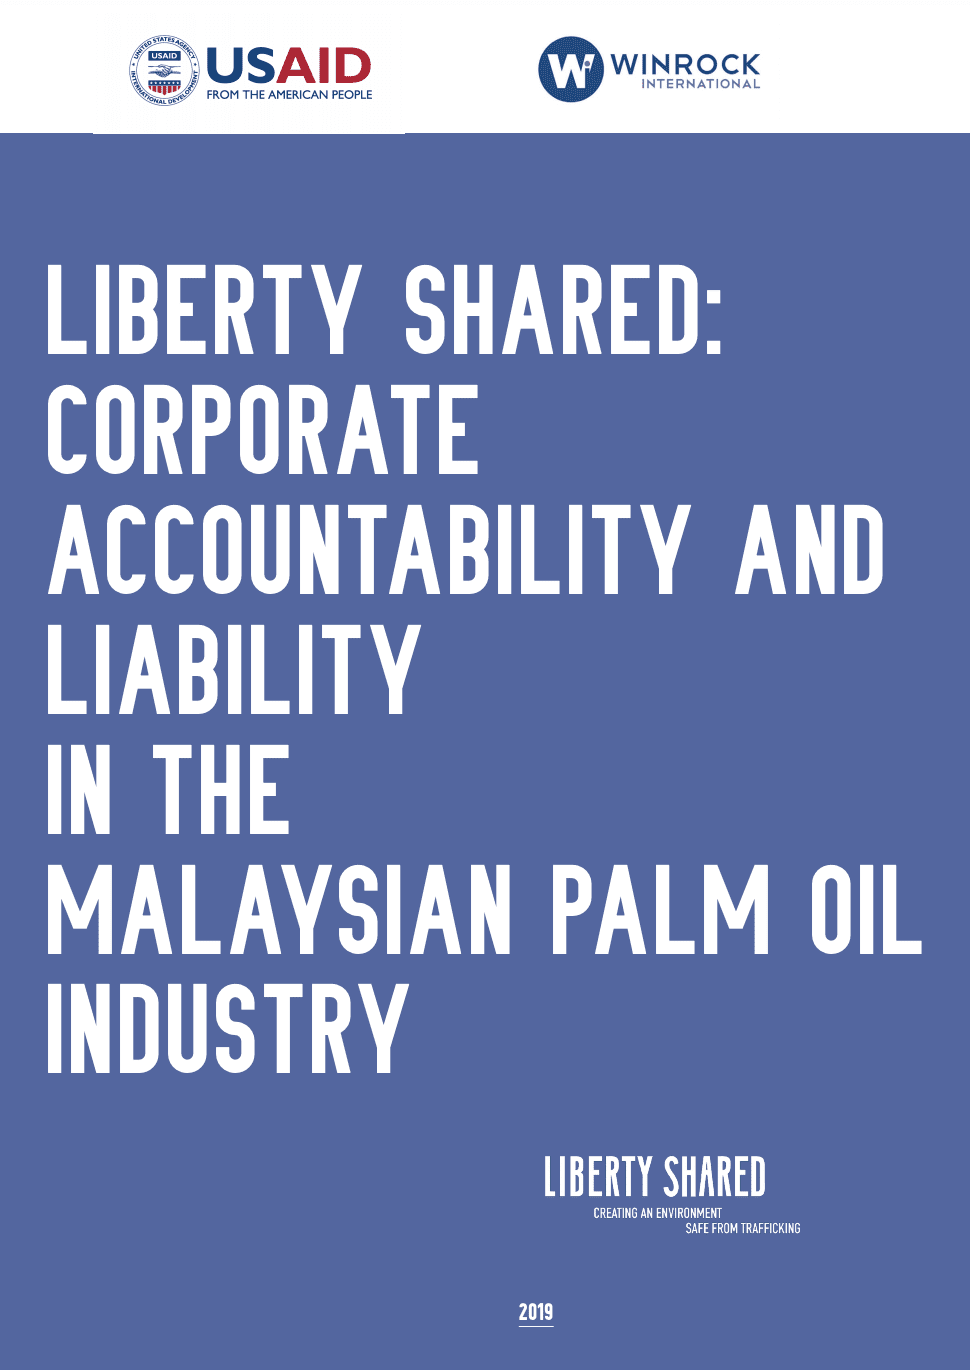 Liberty Shared: Corporate Accountability and Liability in the Malaysian Palm Oil Industry